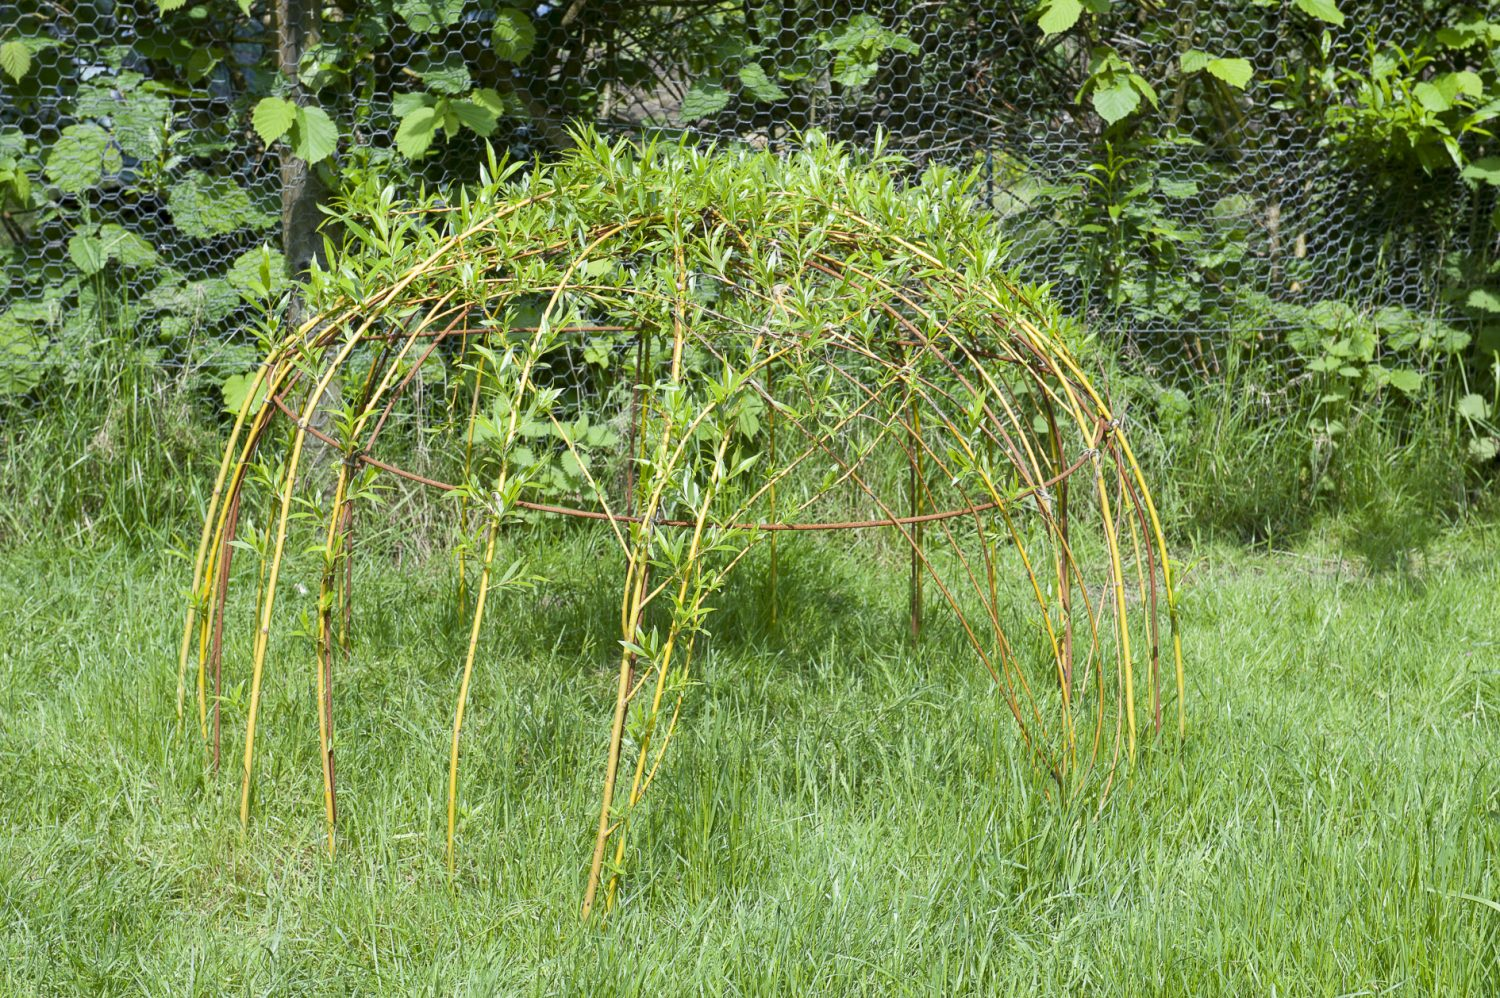 Bespoke pieces made by Rob from Cranbrook Iron are dotted around the garden including this willow-clothed garden den